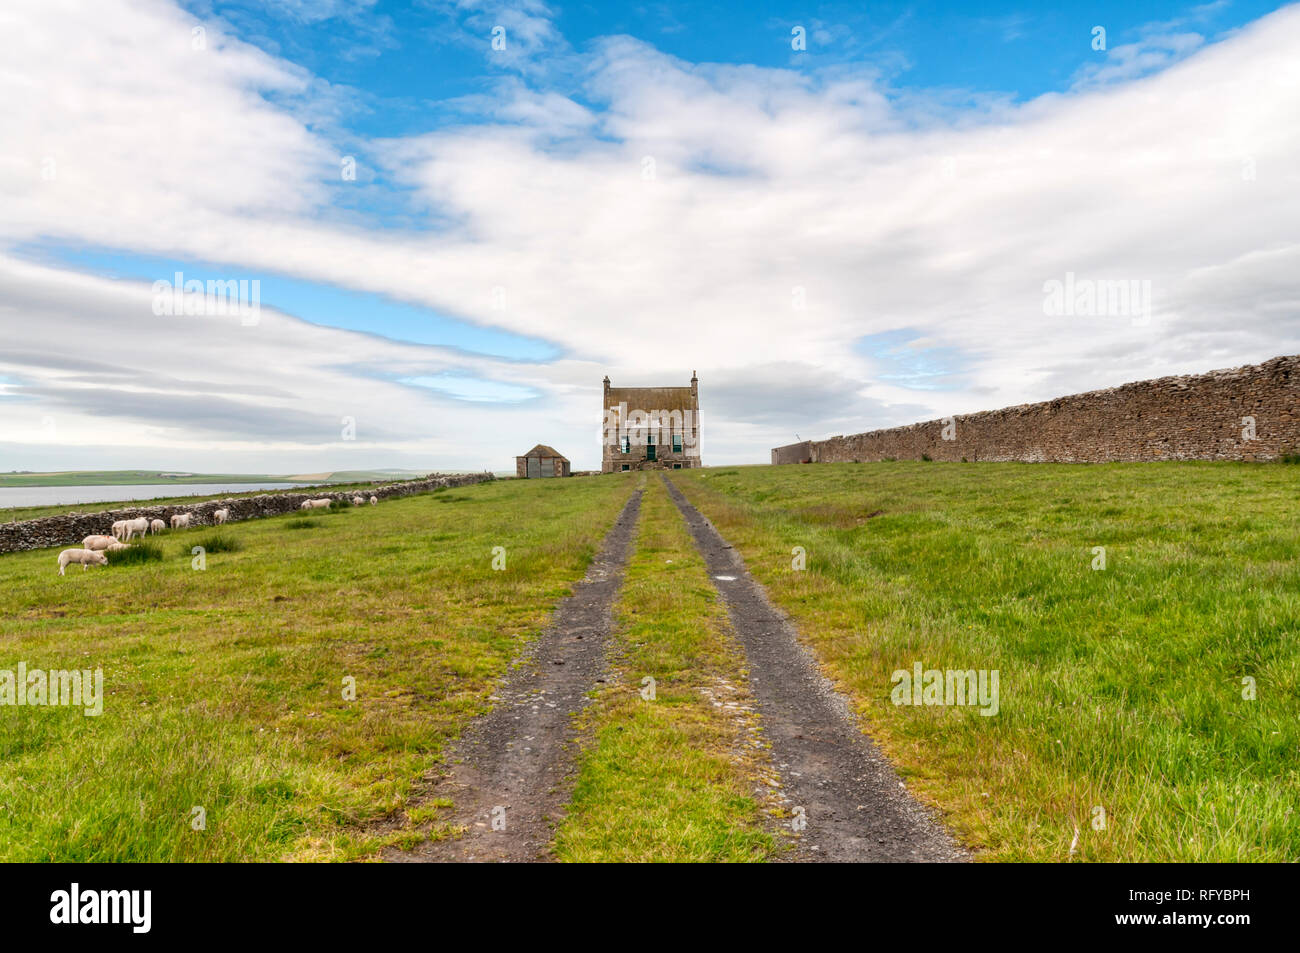 The  Hall of Clestrain on Mainland Orkney was John Rae's birth place - 19th century Arctic explorer.  DETAILS IN DESCRIPTION. Stock Photo